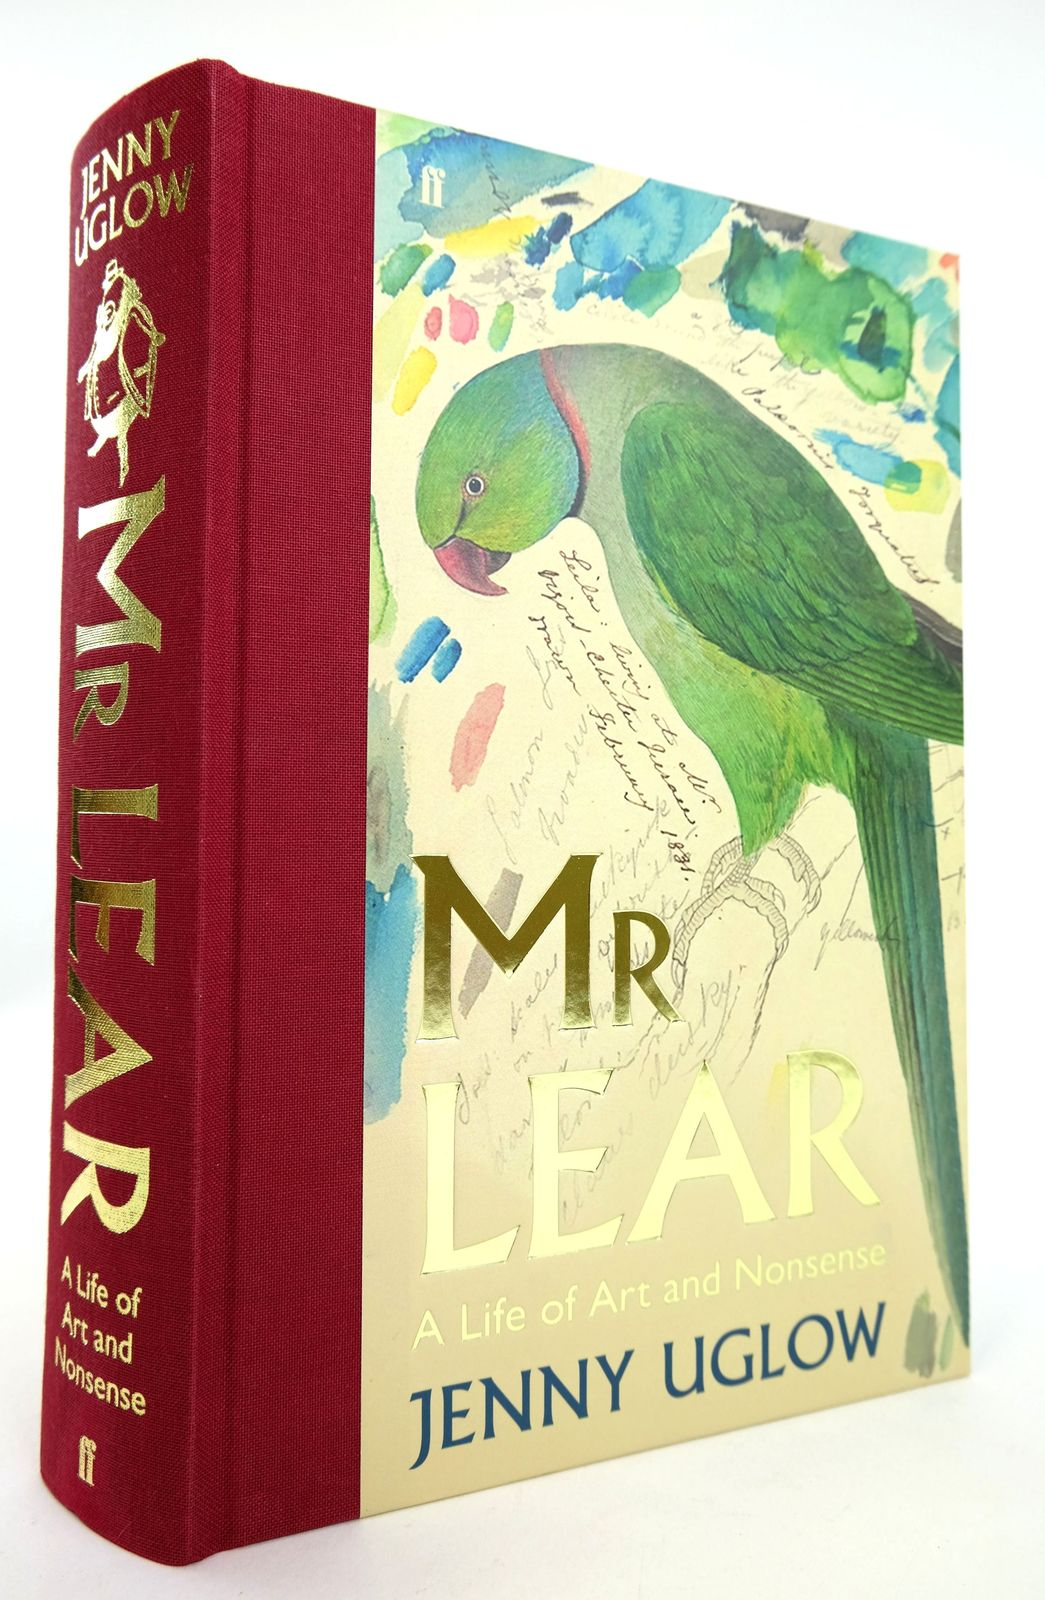 Photo of MR LEAR: A LIFE OF ART AND NONSENSE written by Uglow, Jenny illustrated by Lear, Edward published by Faber & Faber (STOCK CODE: 1818940)  for sale by Stella & Rose's Books